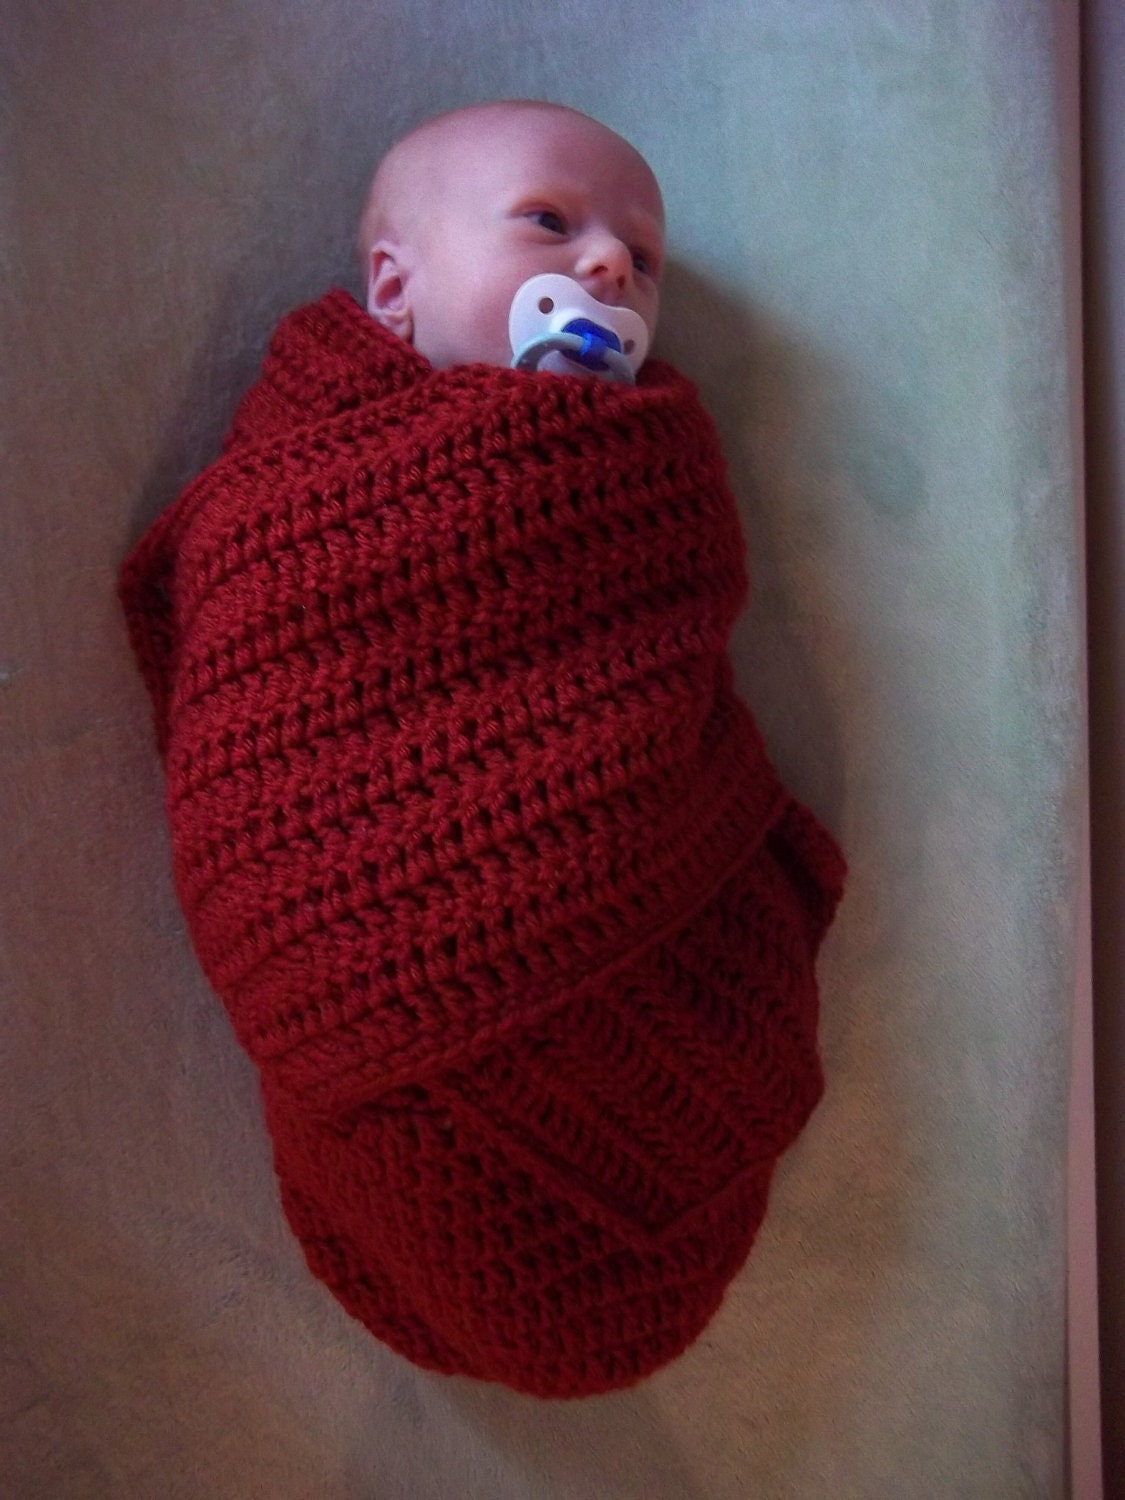 Crochet Pattern For Swaddle Blanket : Swaddler Crochet Pattern Swaddle Blanket by browneyedgirl1489